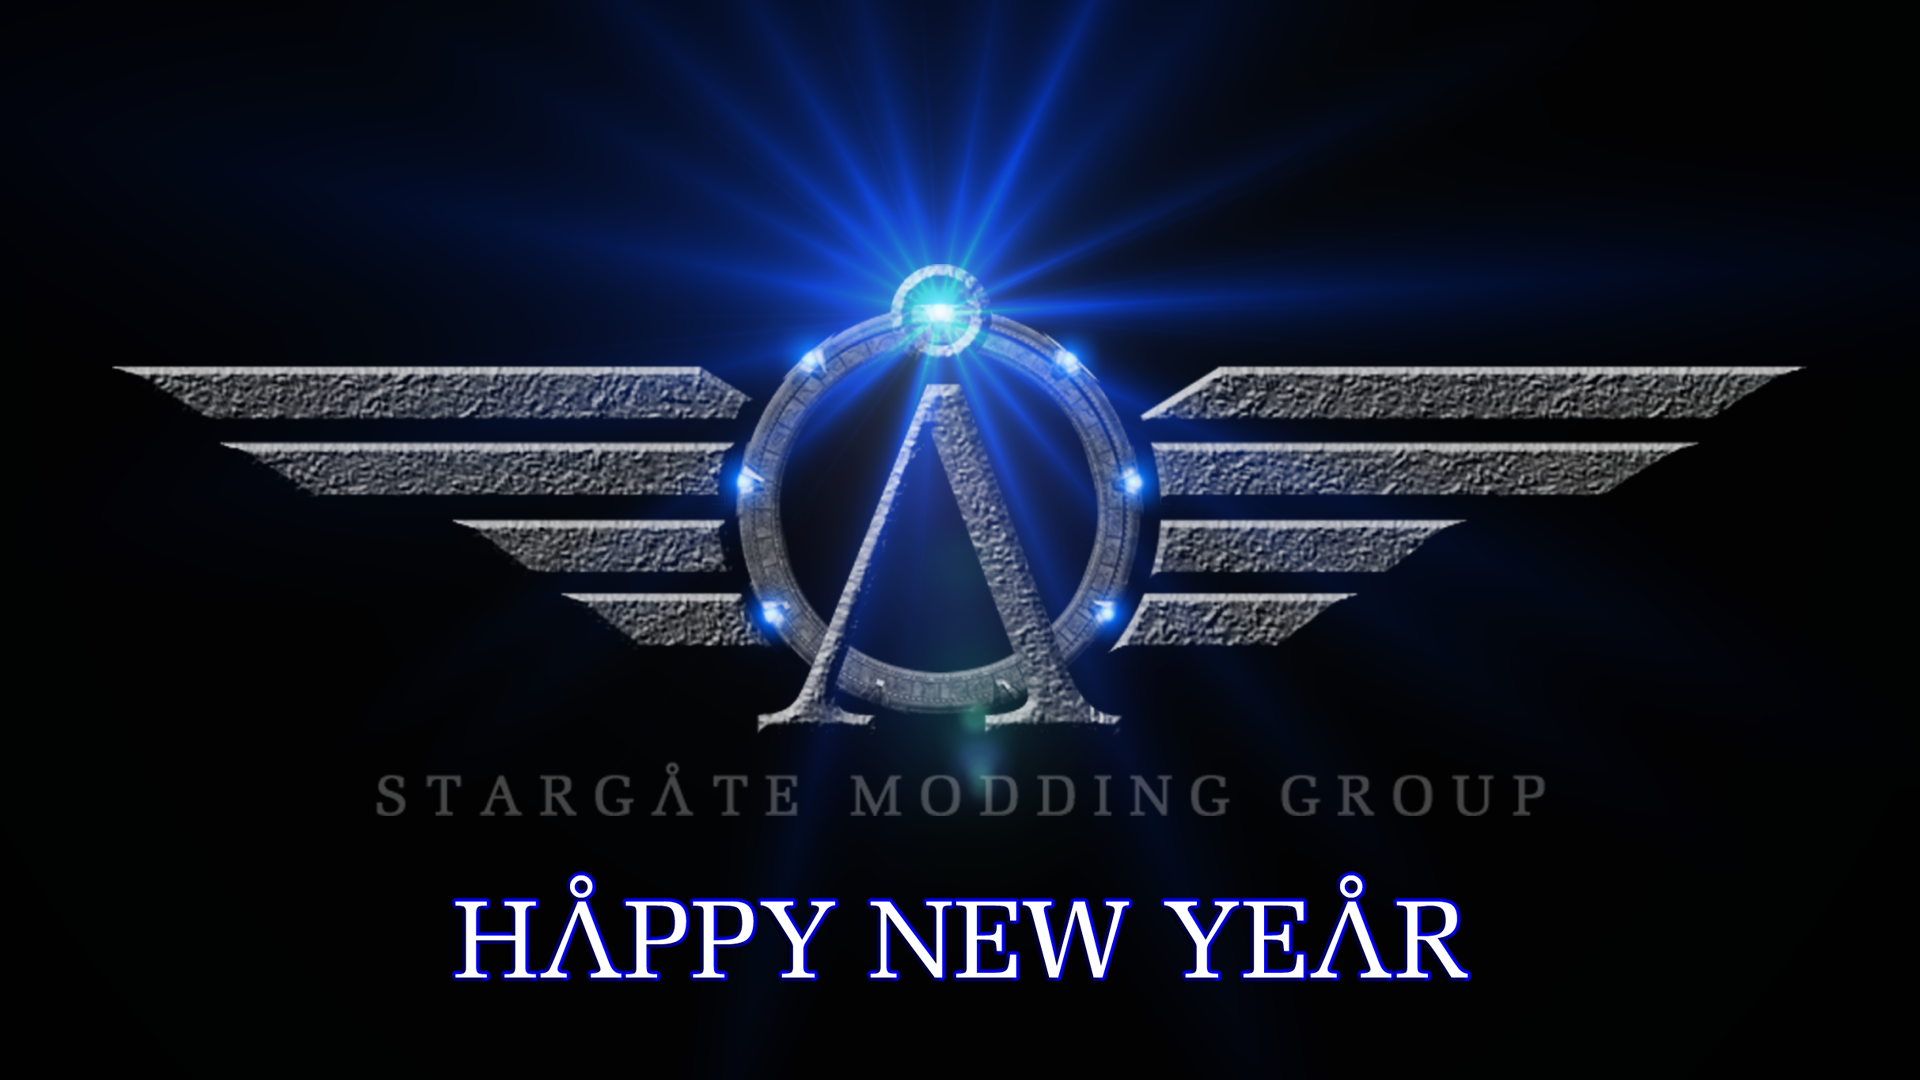 happy new year image - stargate - empire at war: pegasus